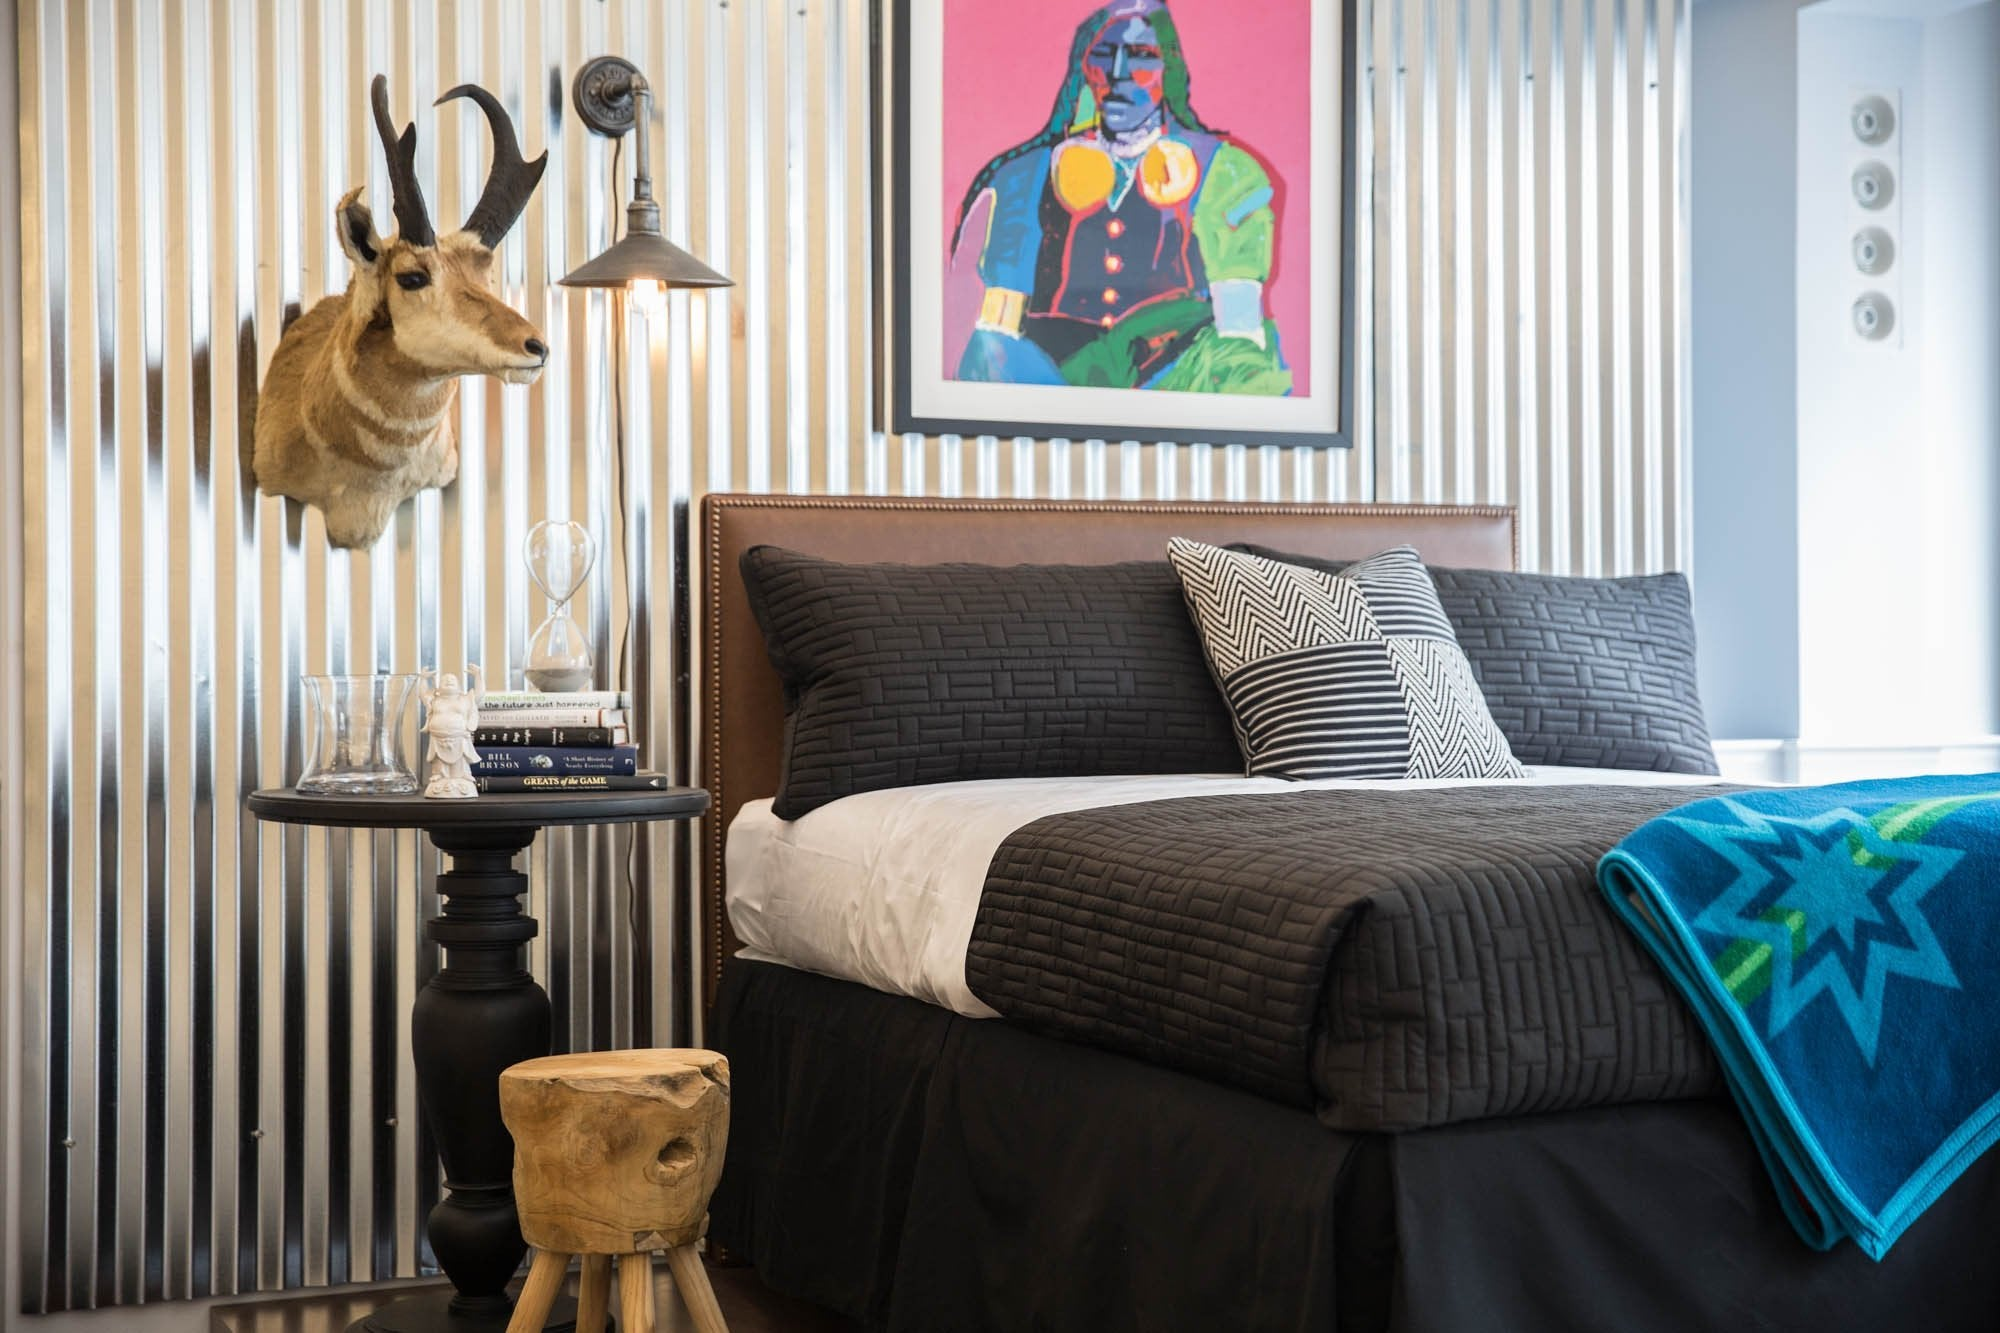 Making Your Bedroom a Haven: Bedroom Design Tips from Design Pros Lonnie and Dave Hinckley